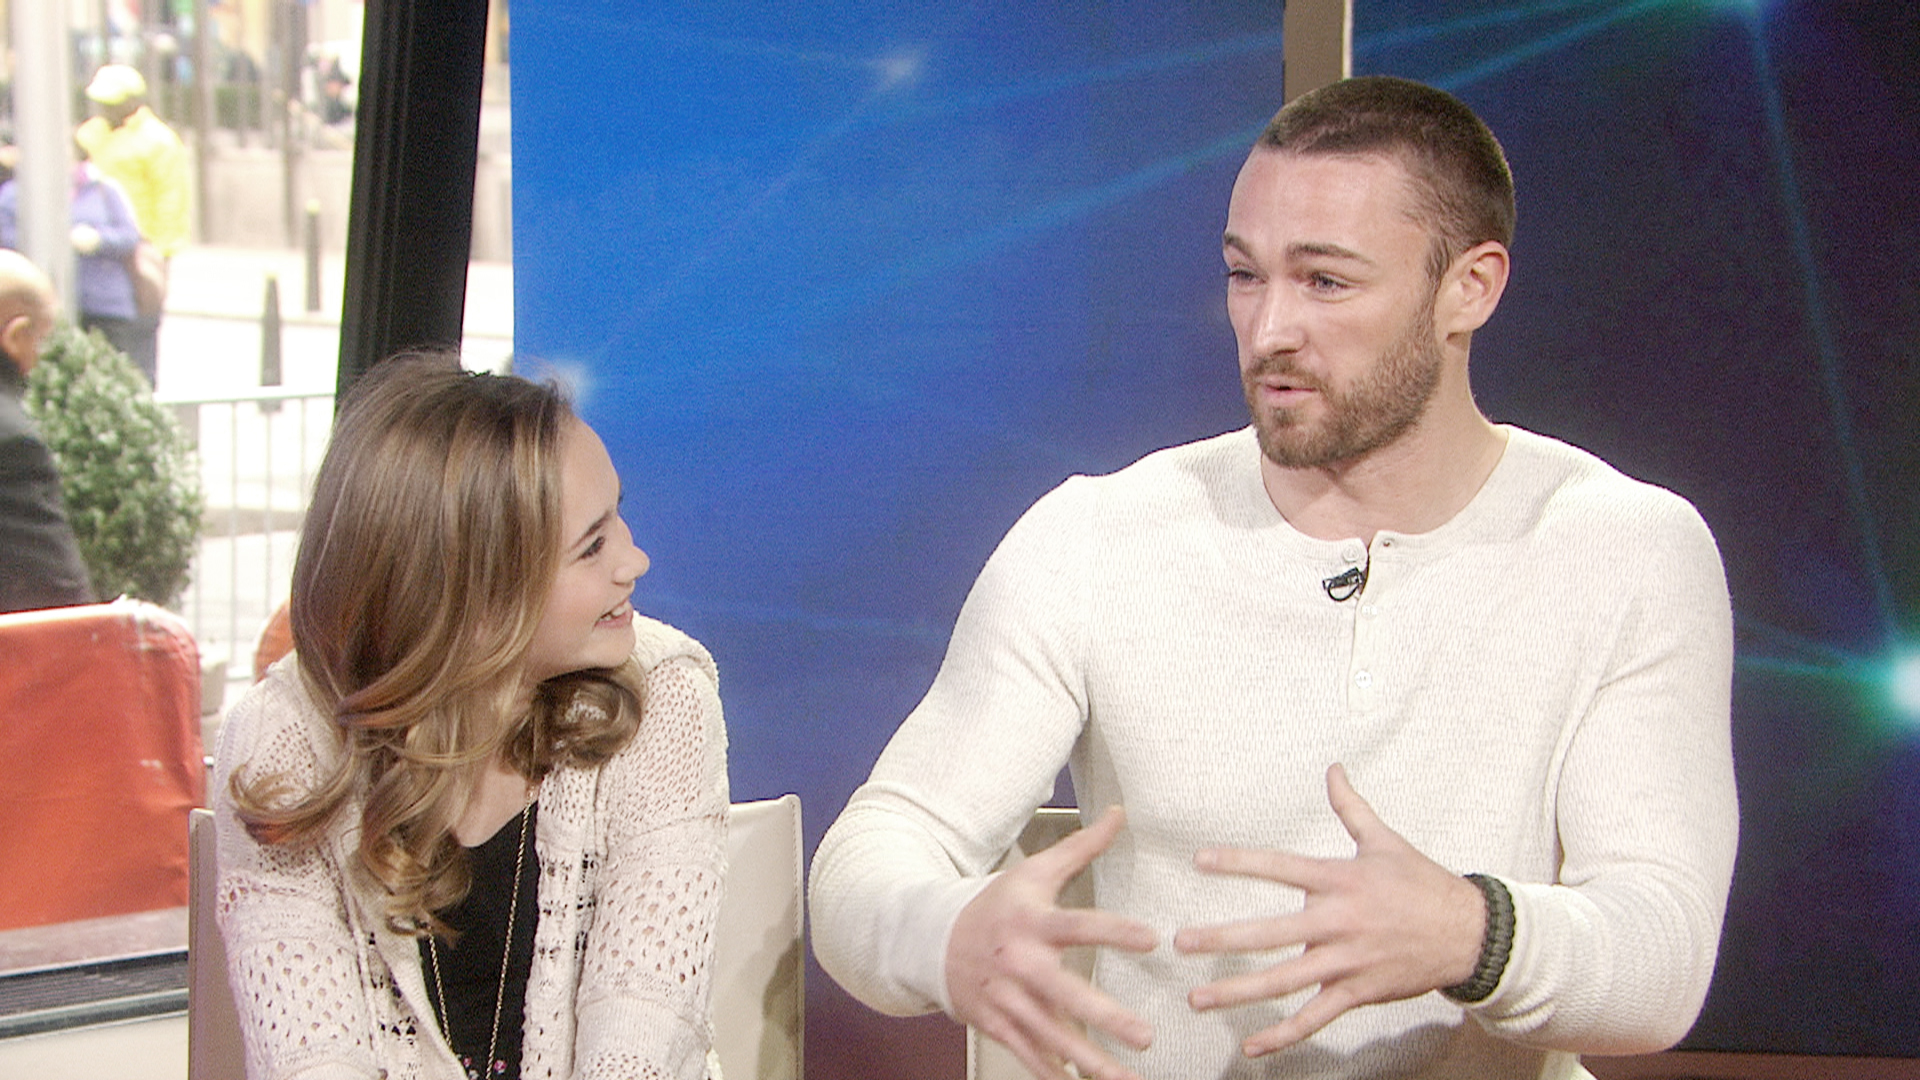 'Believe' stars chat about on-screen chemistry - TODAY.com